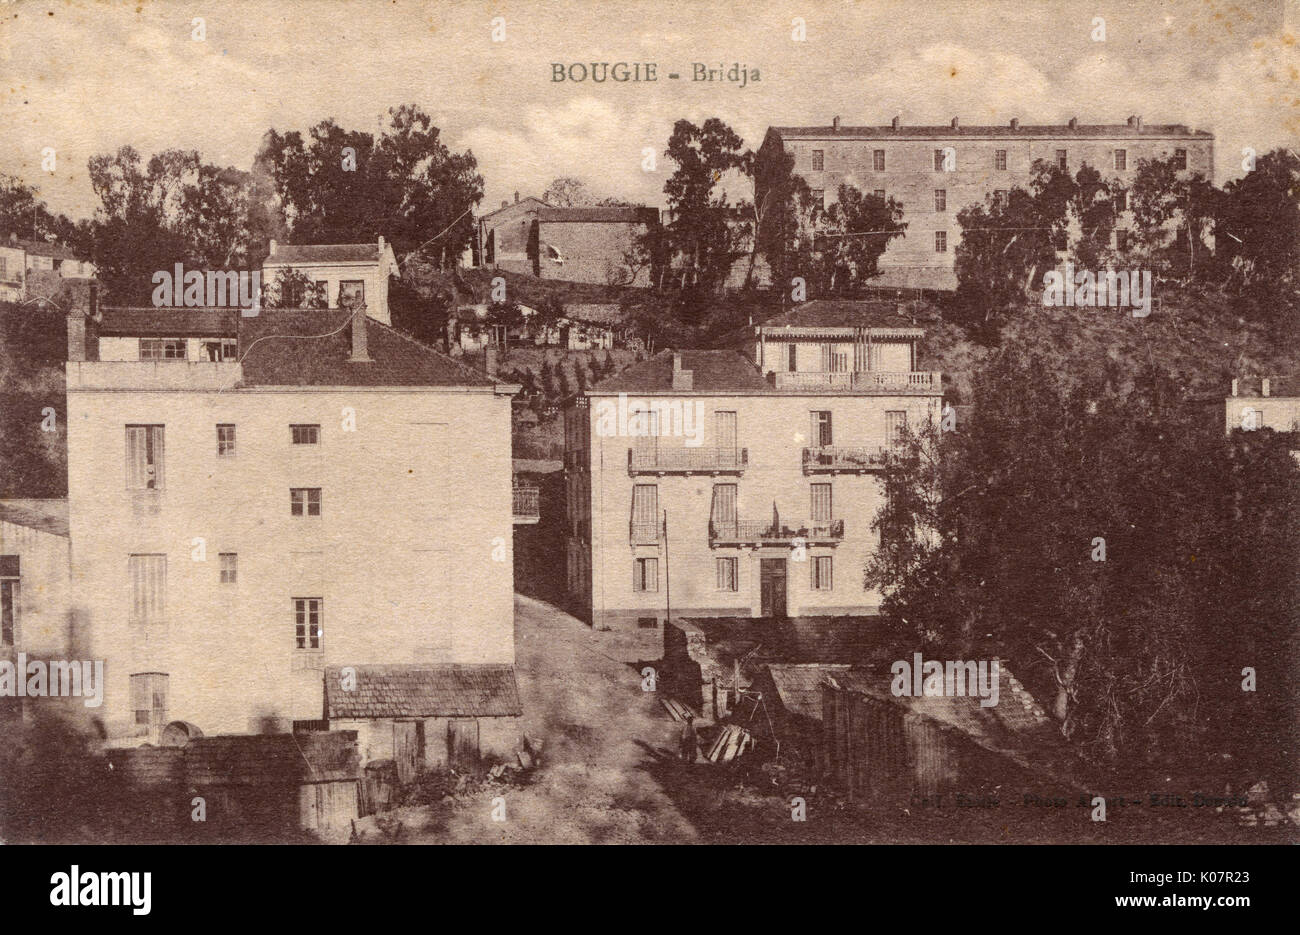 General view of Bridja, Bougie (Bugia, Bejaia), Algeria, North Africa, with hillside mansions and other buildings.      Date: circa 1910 - Stock Image